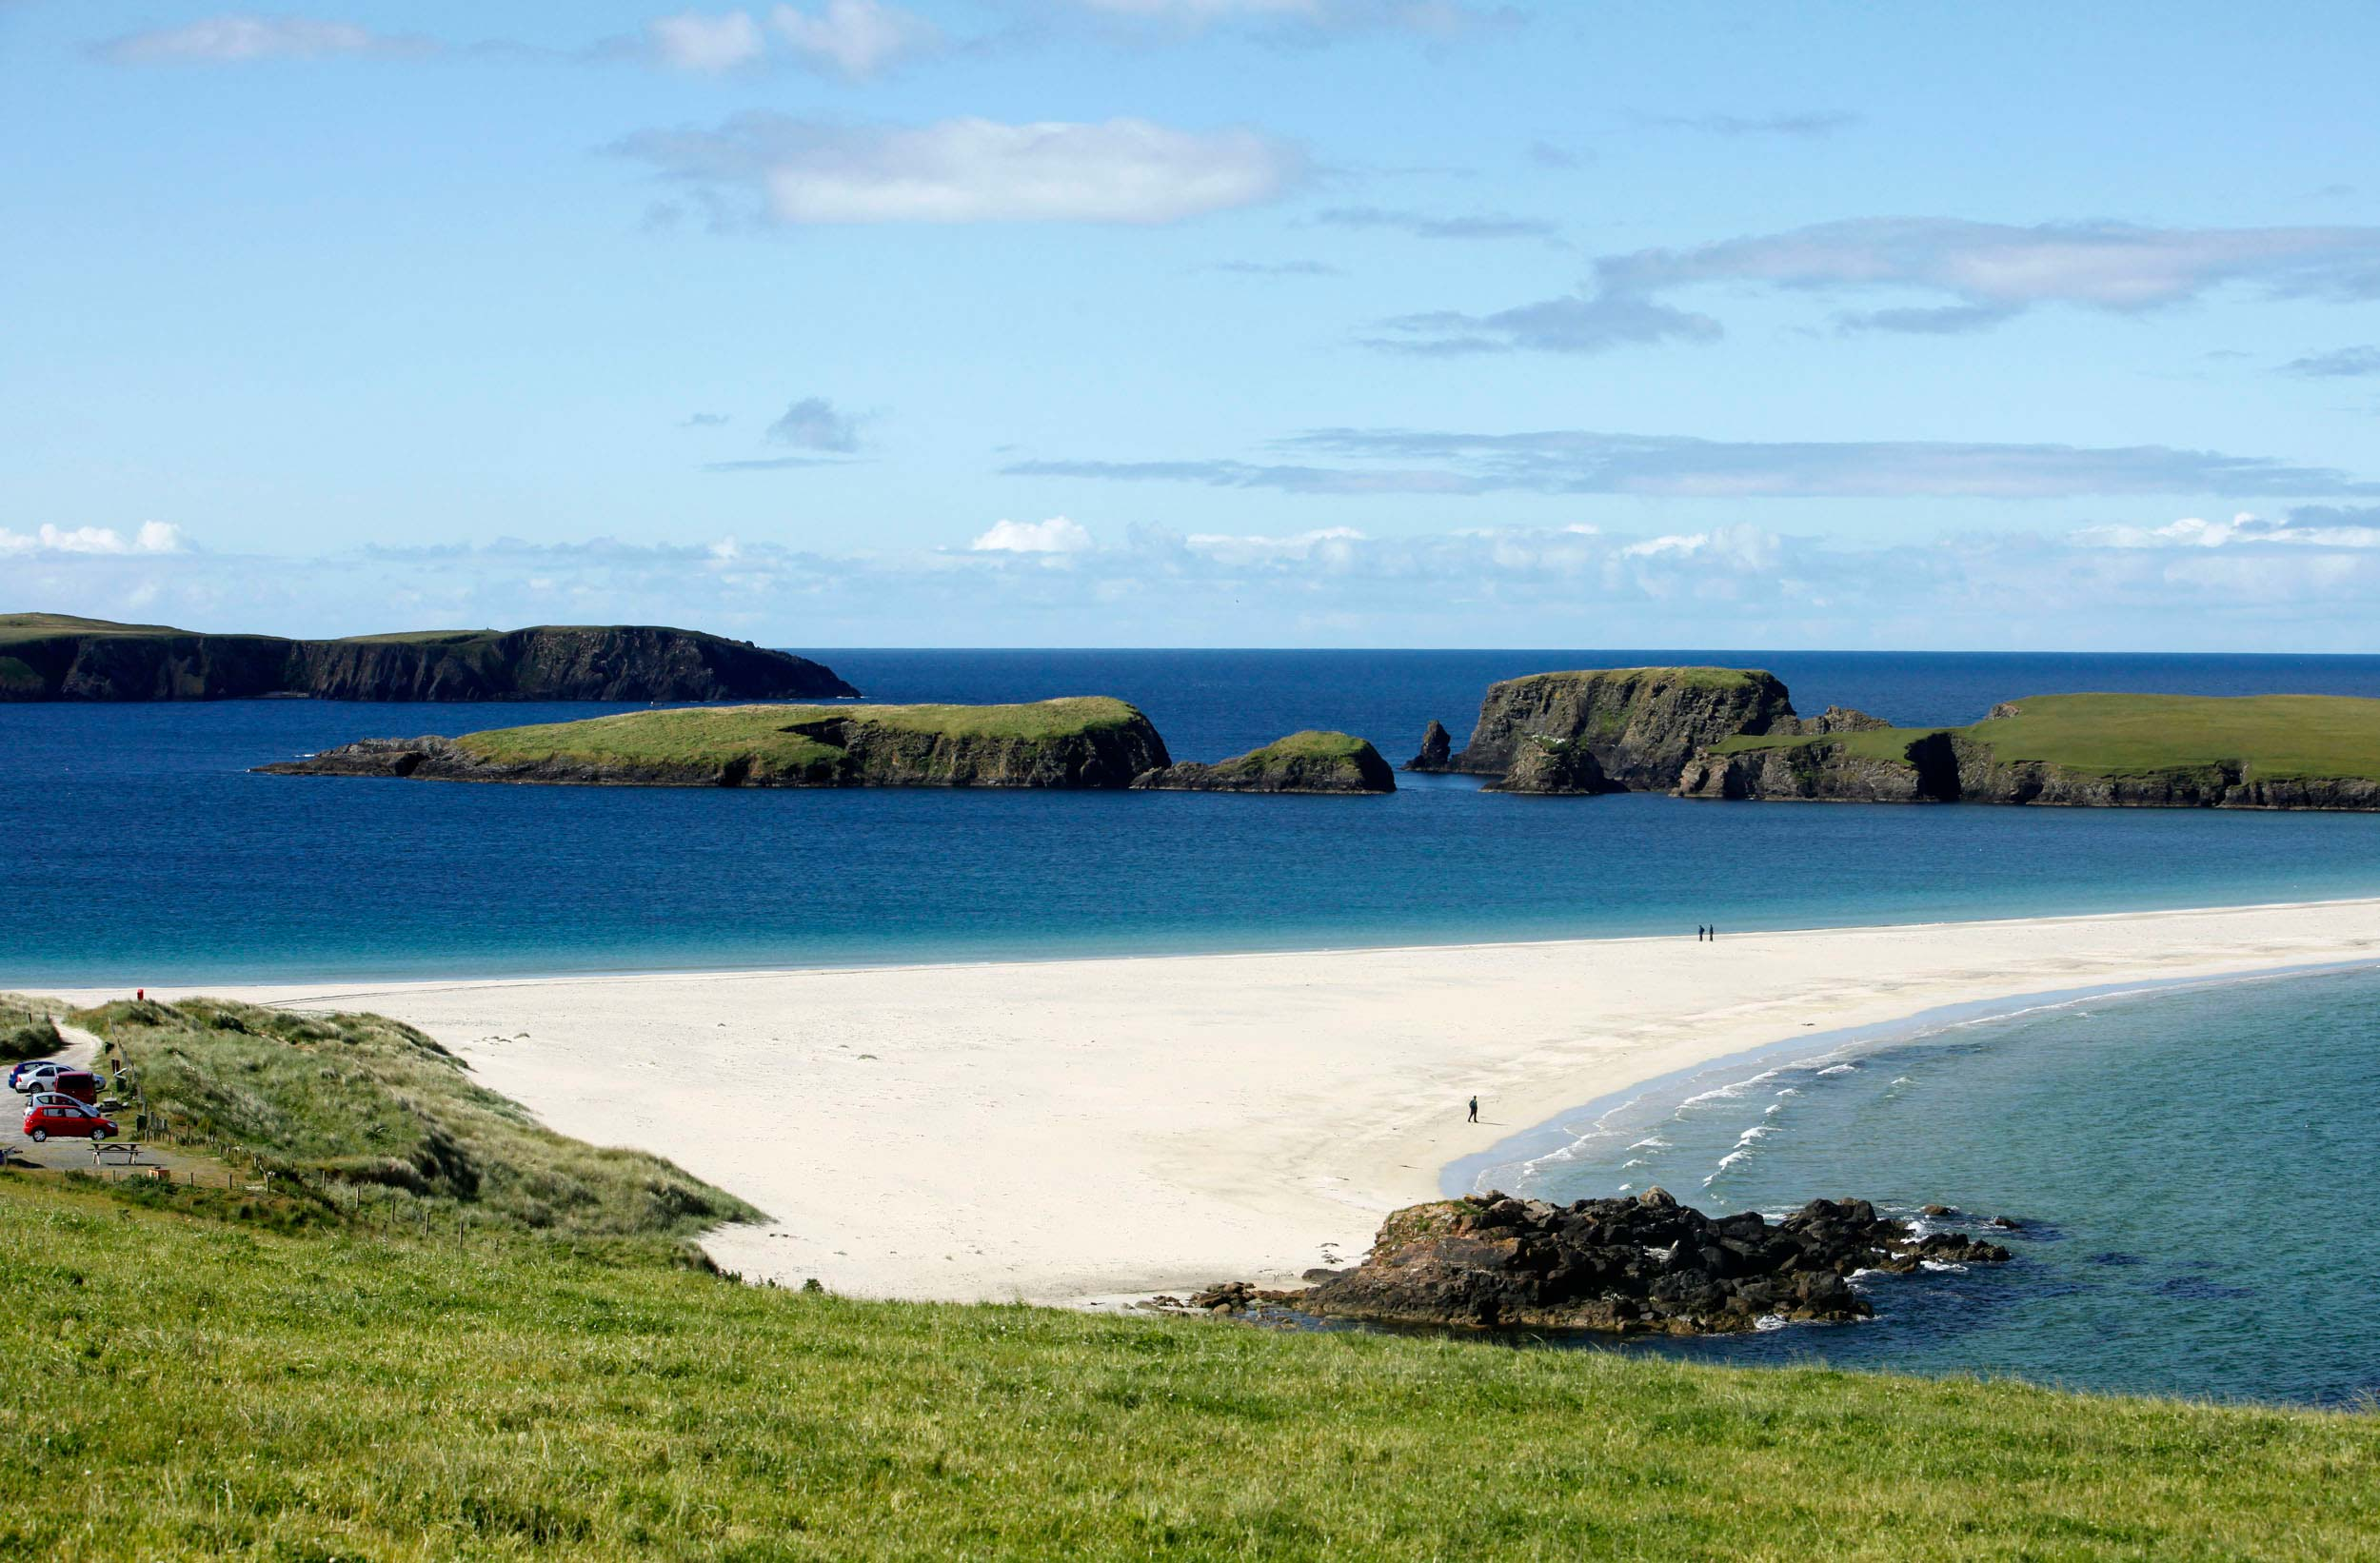 Shetland-visitscotland_26713868805---St-Ninian_s-Isle-joined-to-Mainland-by-a-tombolo-of-sand-at-Bigton-Shetland-small.jpg